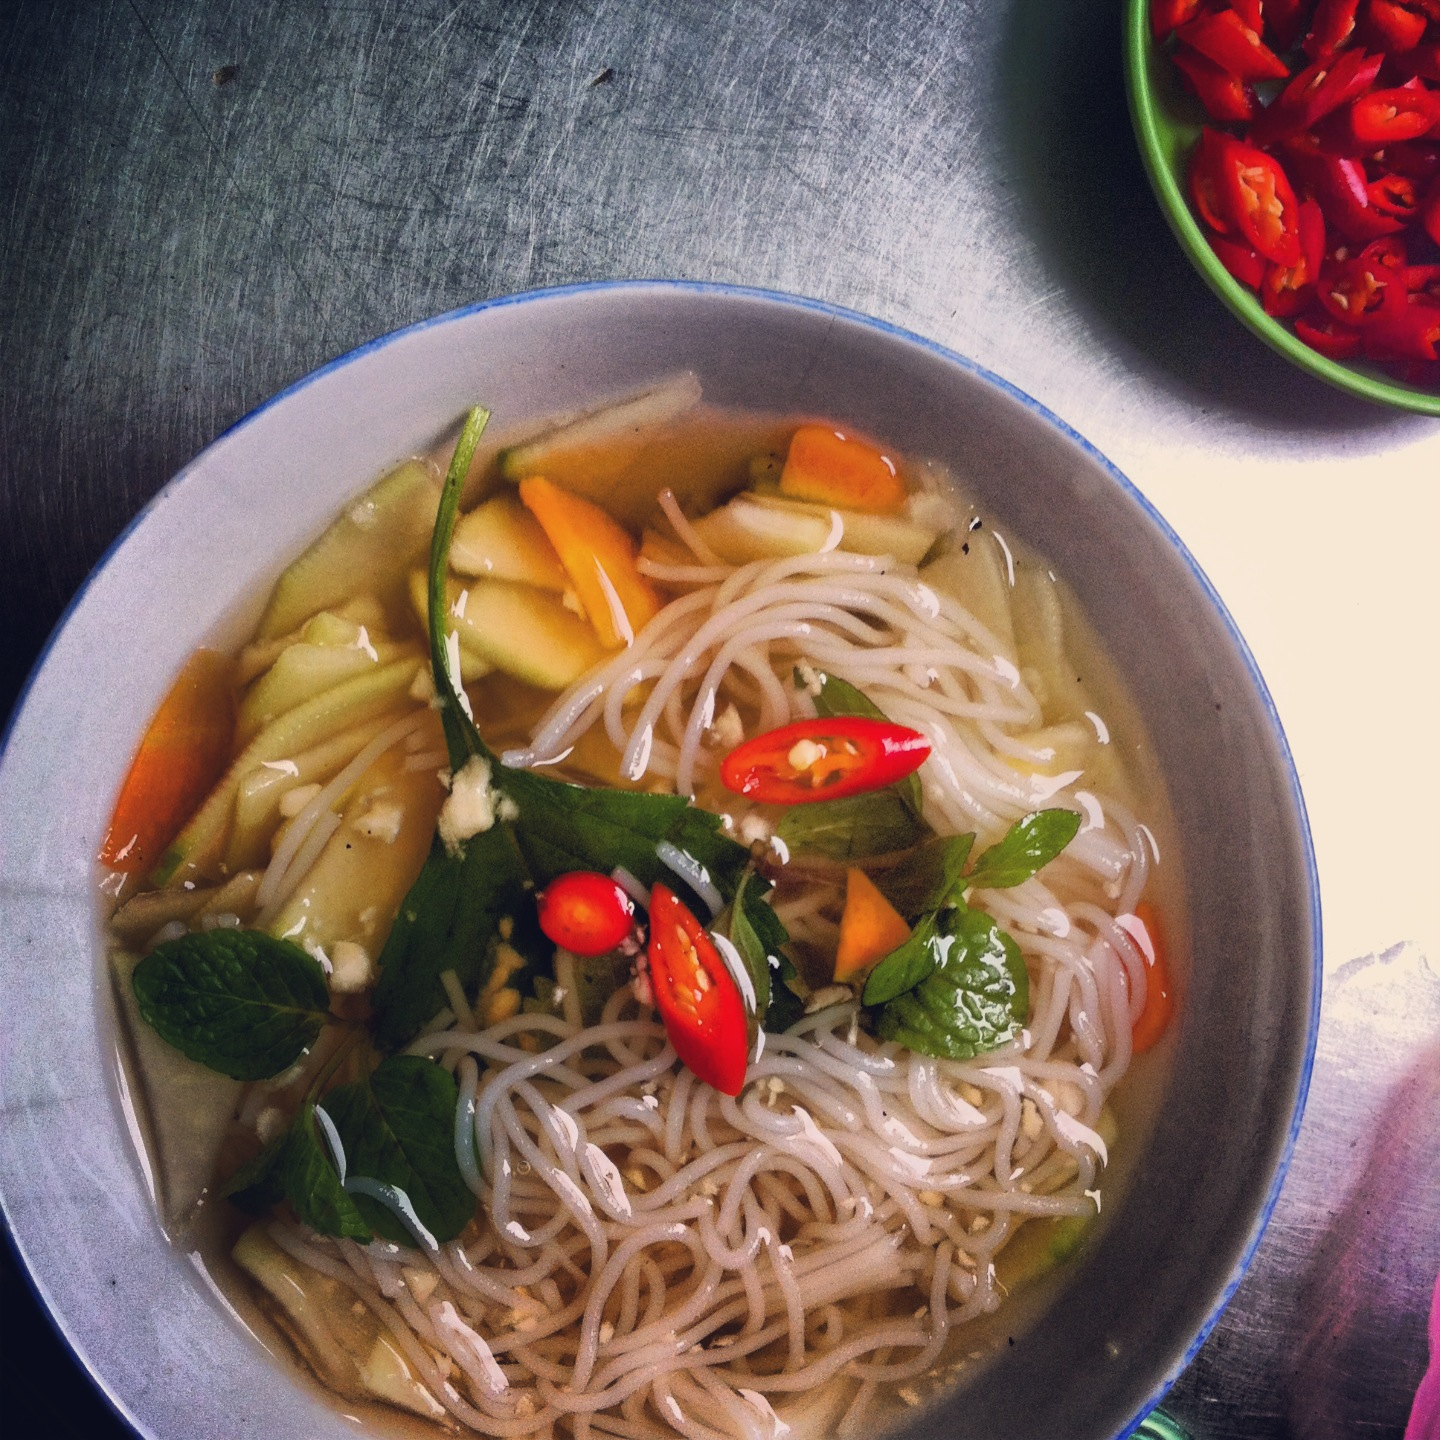 bowl of soup with noodles and herbs